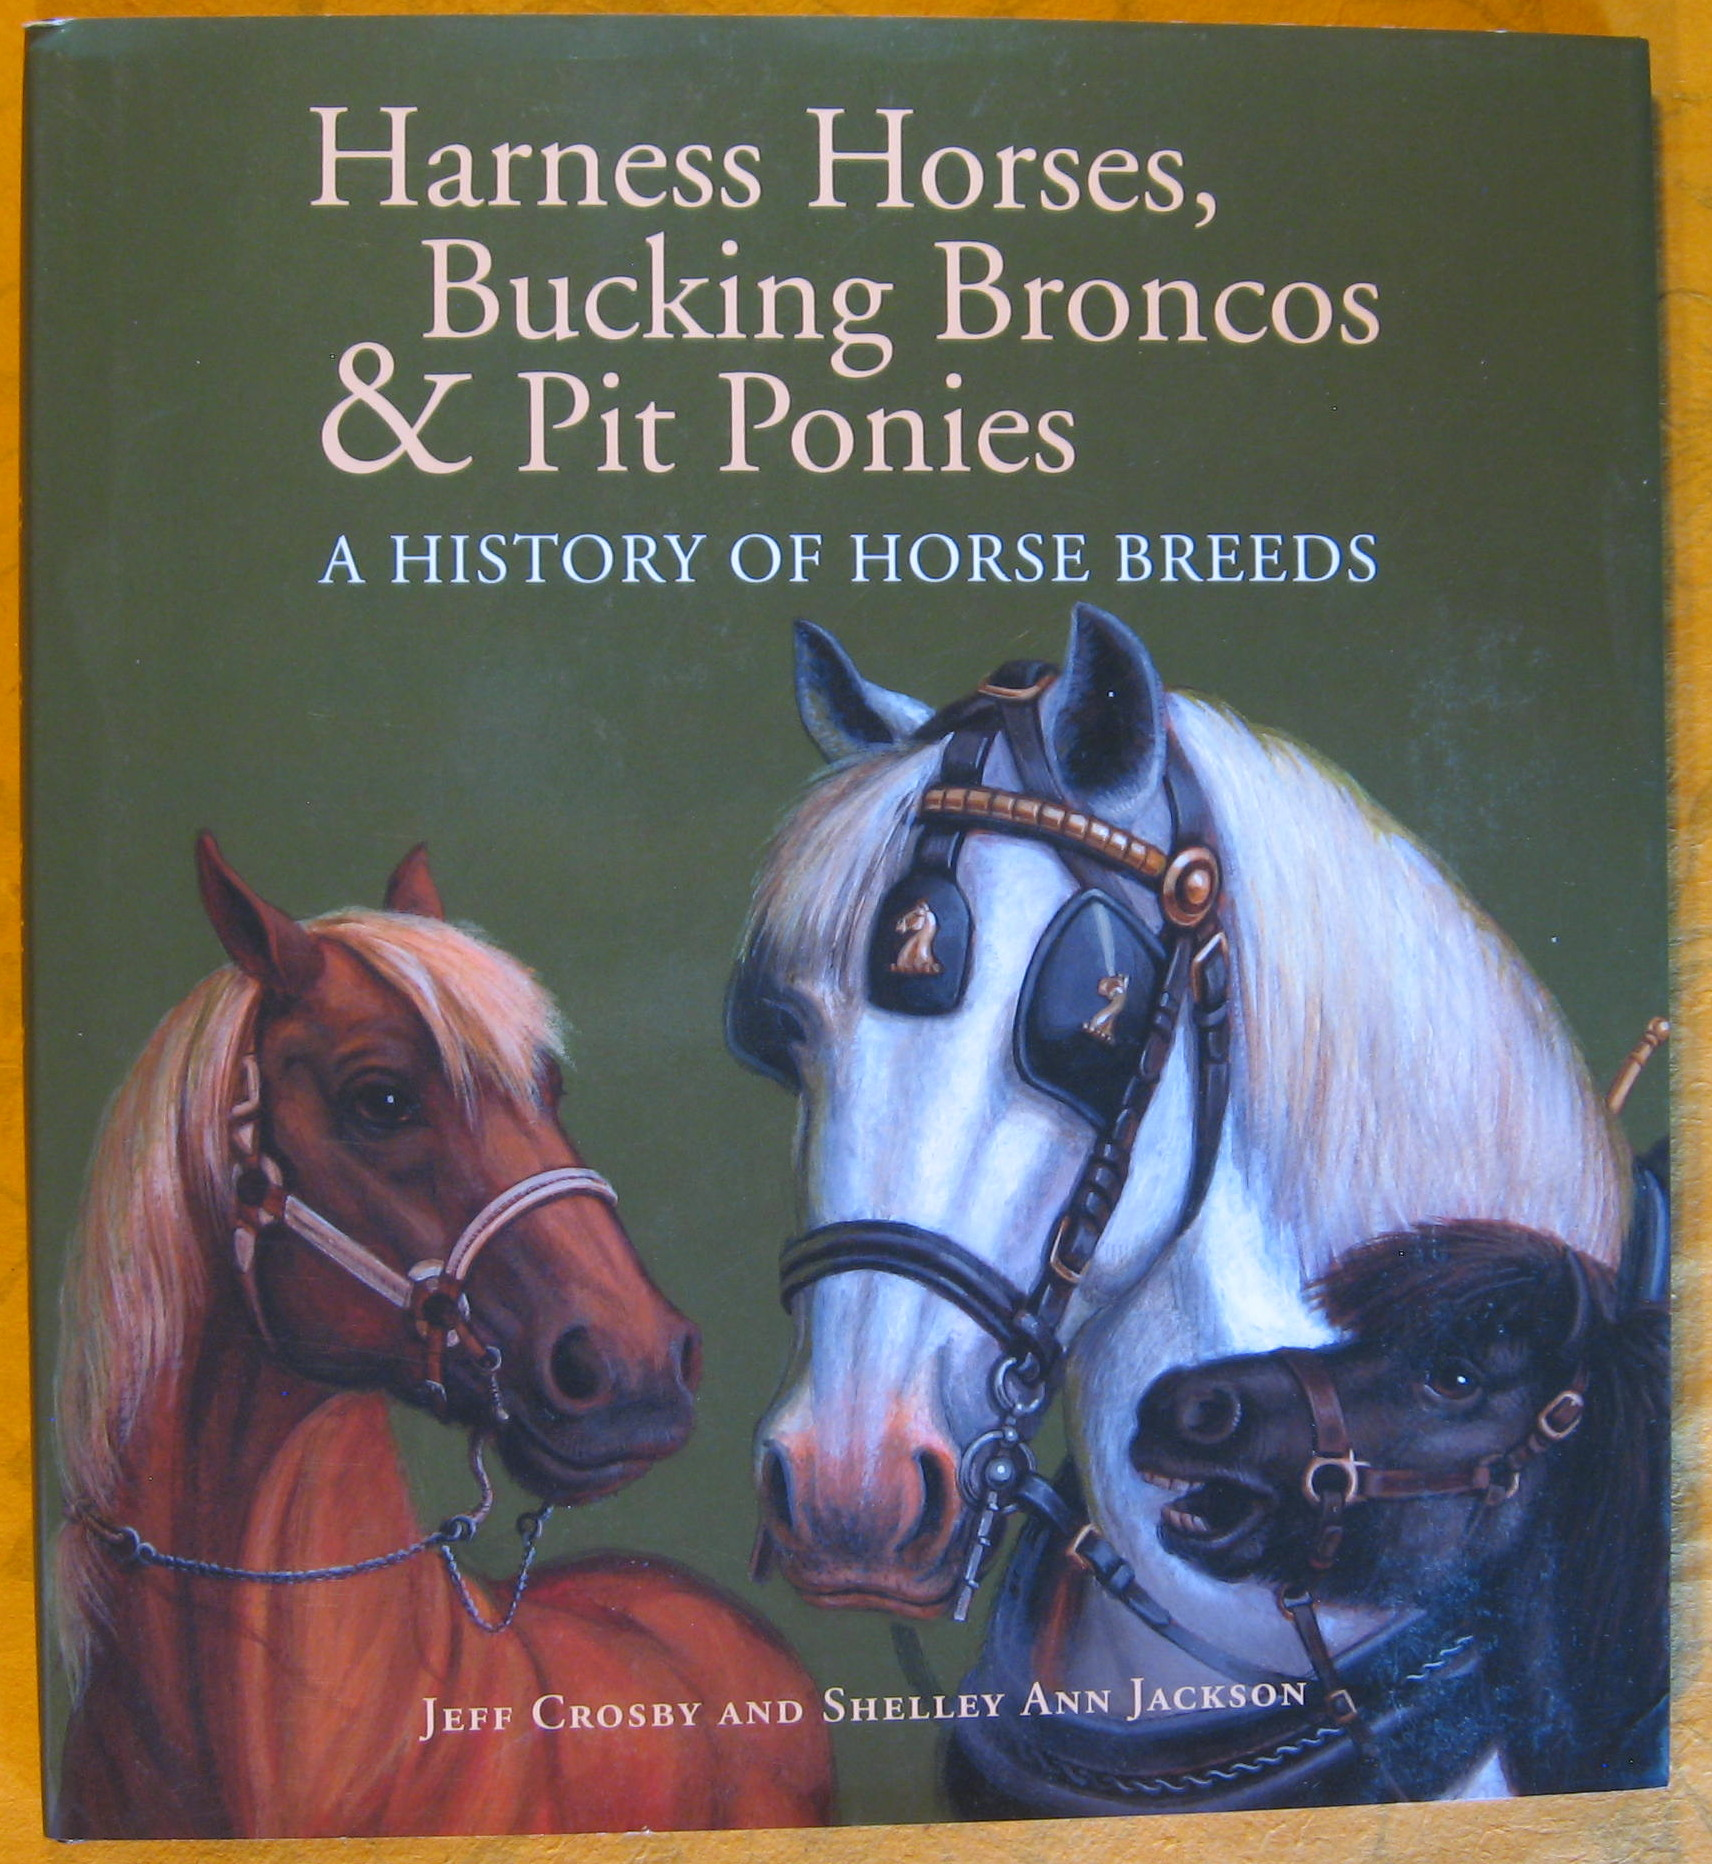 Image for Harness Horses, Bucking Broncos & Pit Ponies: A History of Horse Breeds